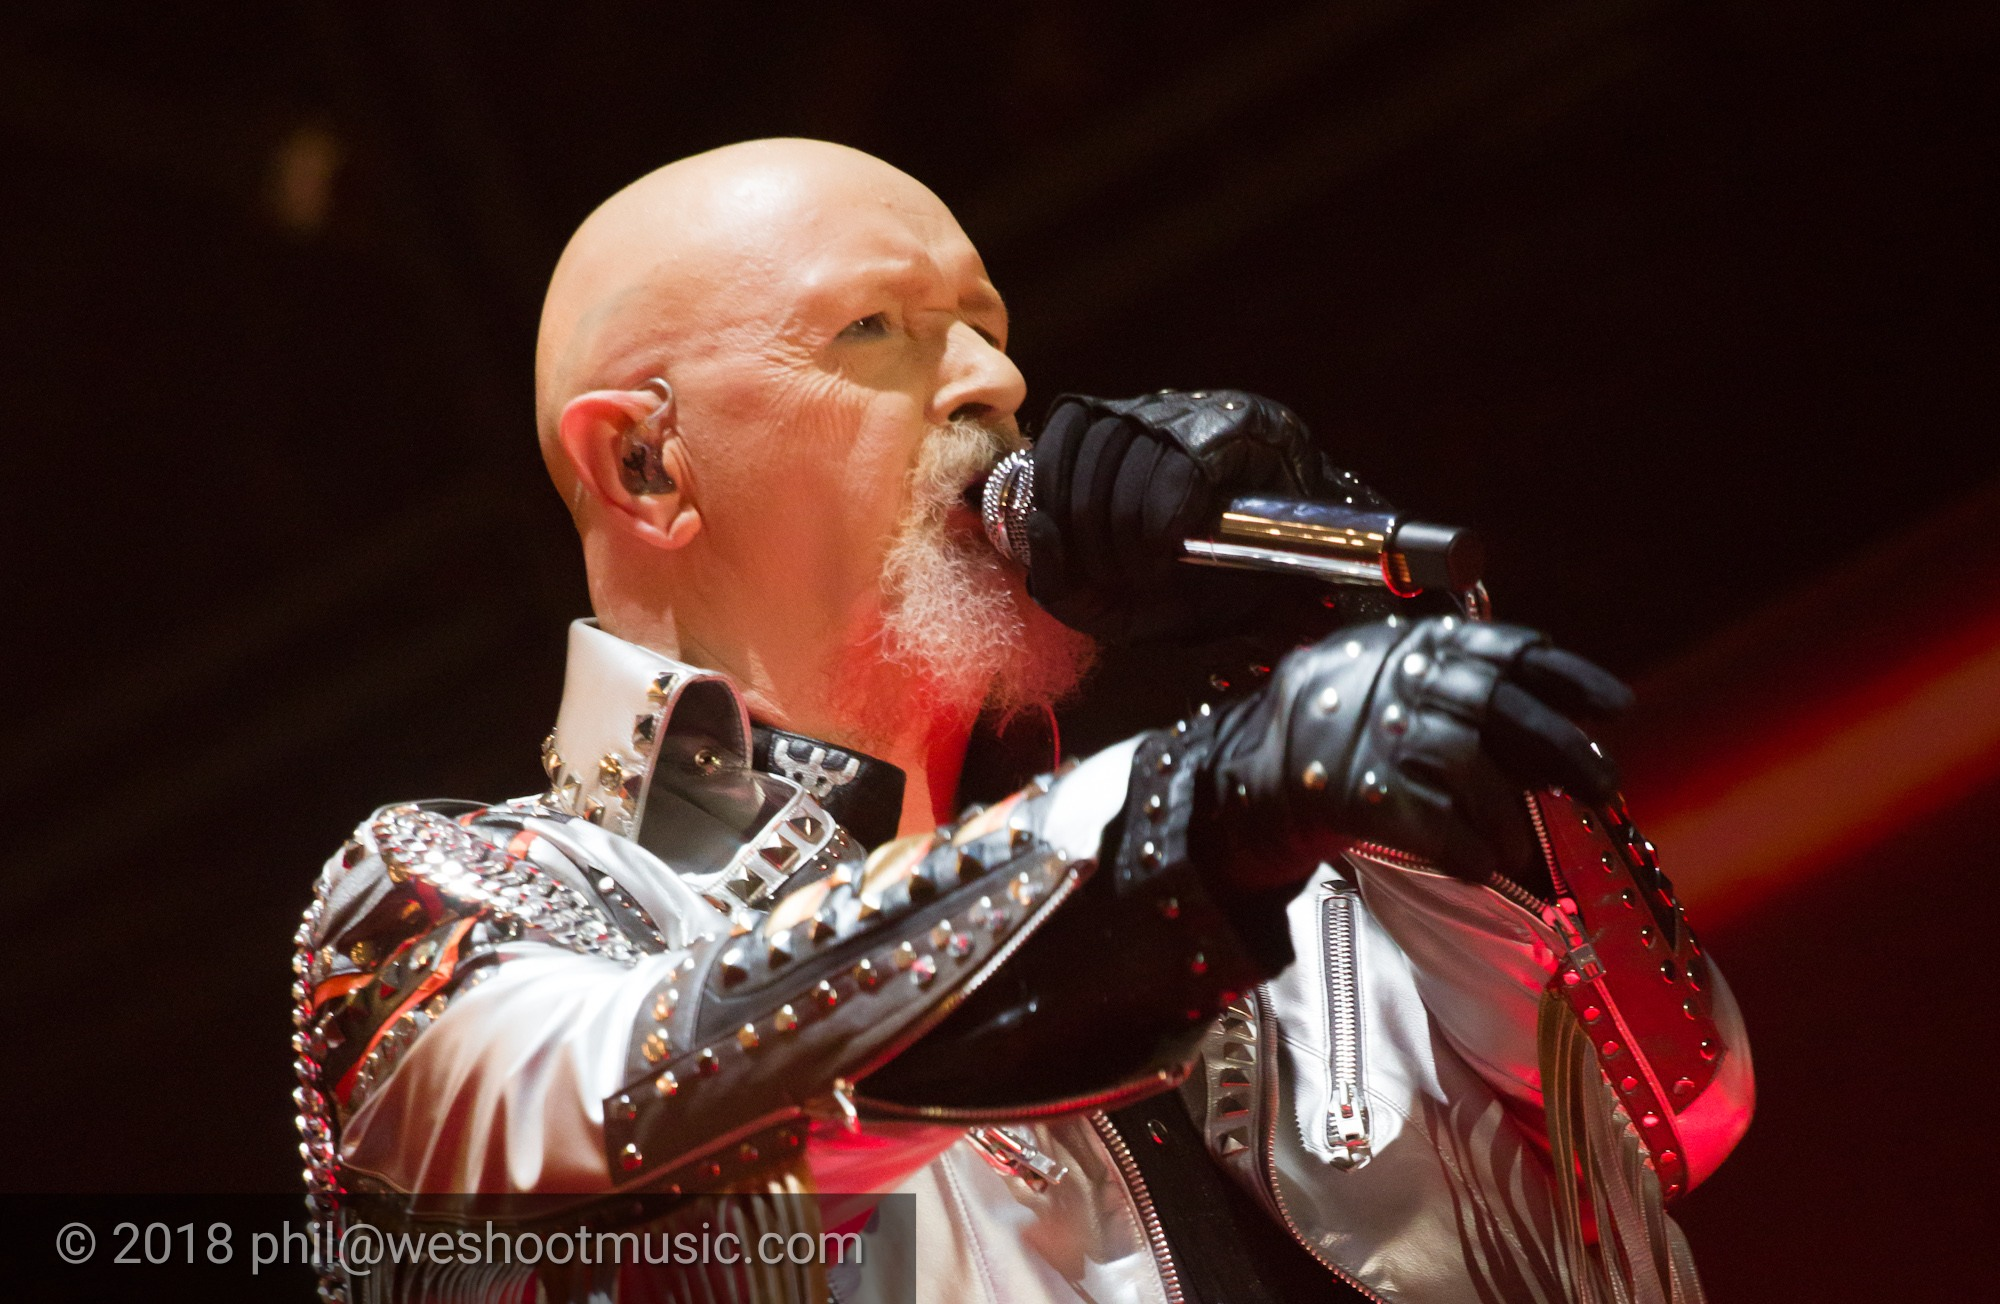 Judas Priest and Combichrist Gallery from Bloodstock 2018